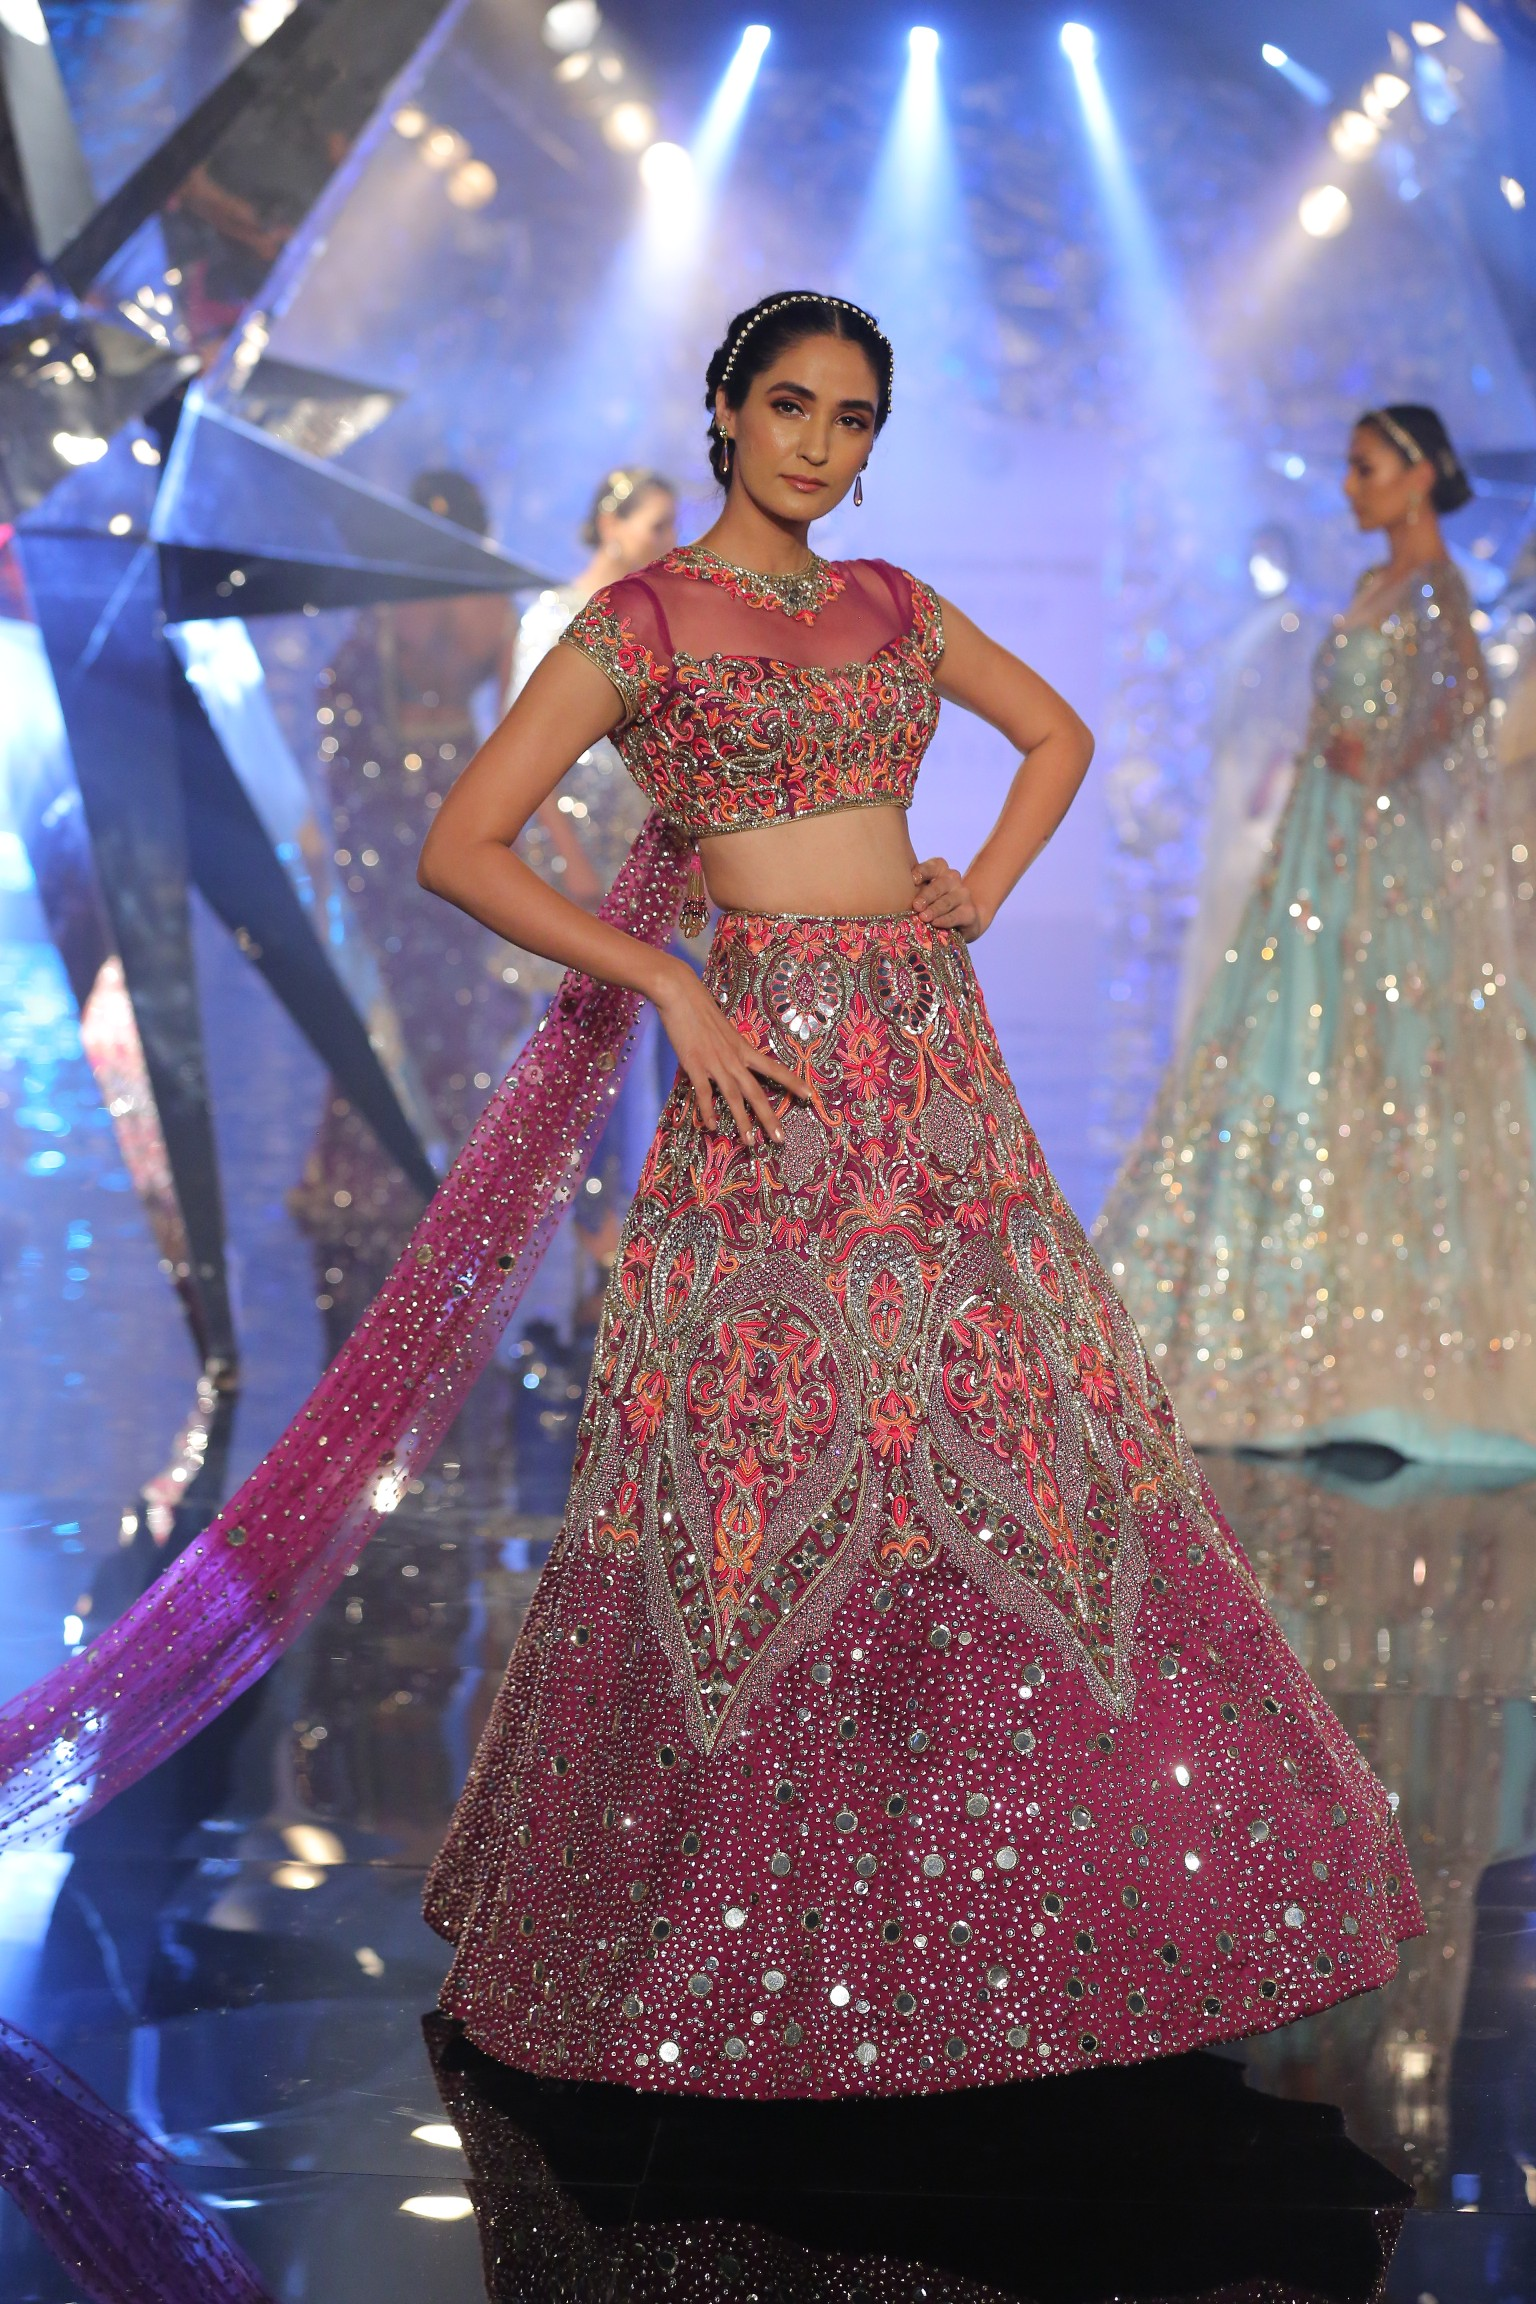 Naintara by Suneet Varma at FDCI India Couture Week 2018